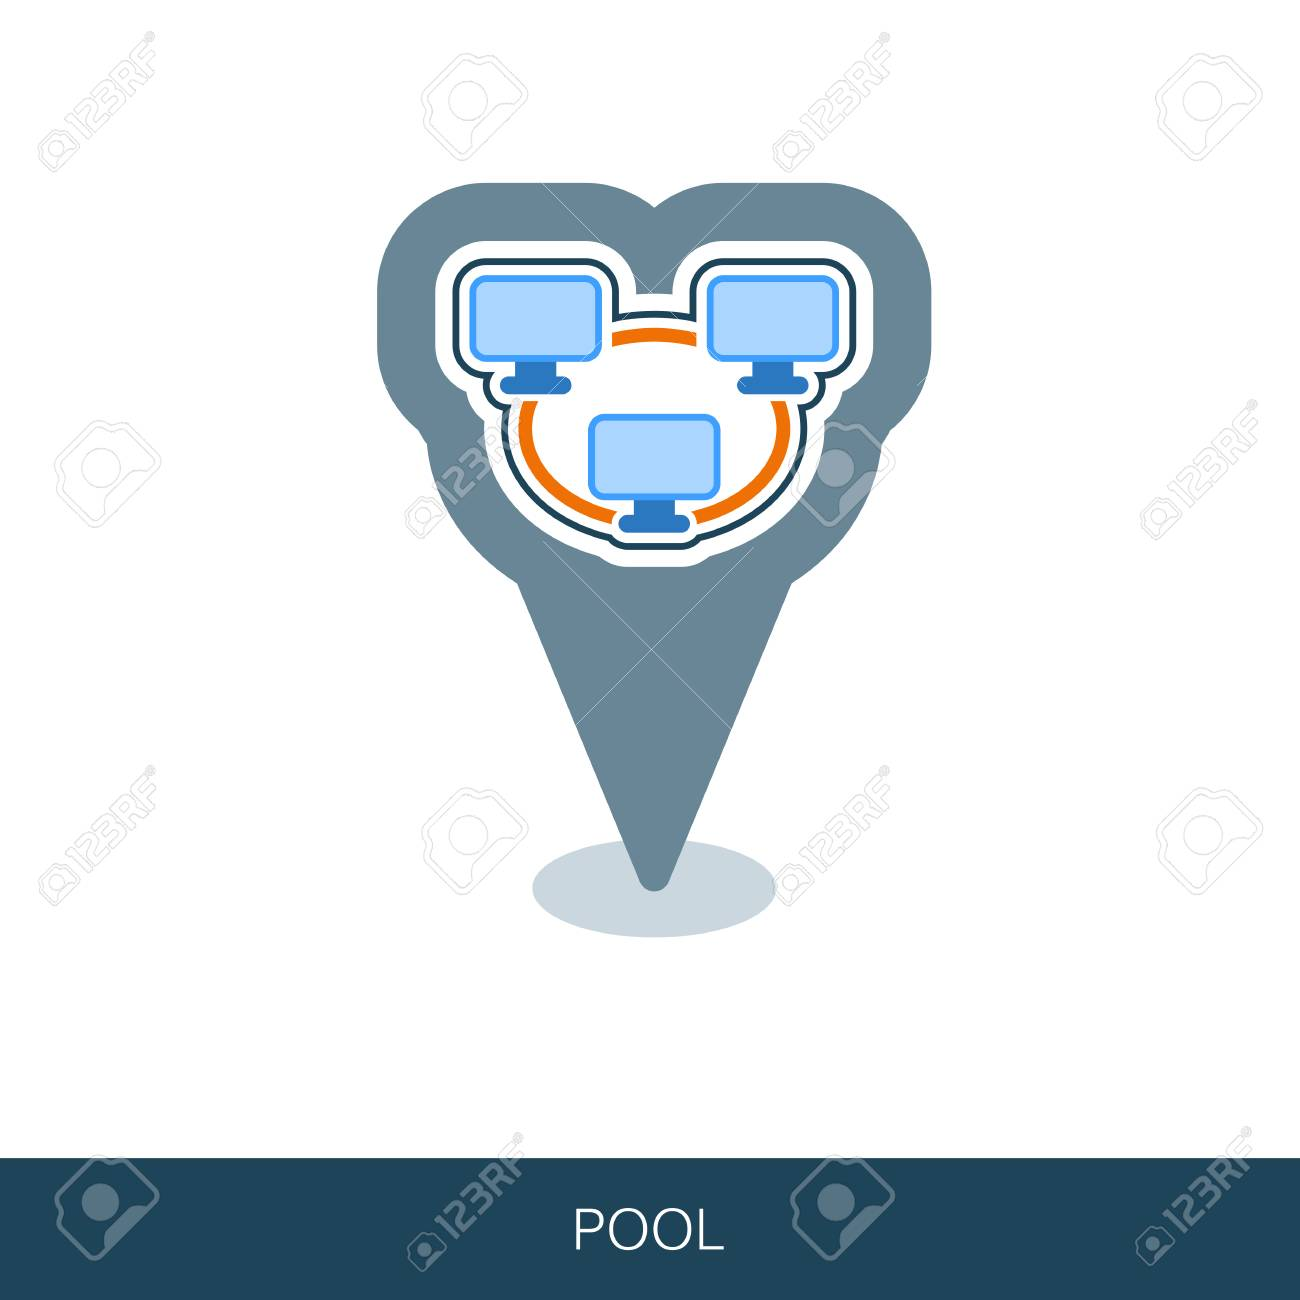 Bitcoin mining pool pin map icon with peer-to-peer computer network